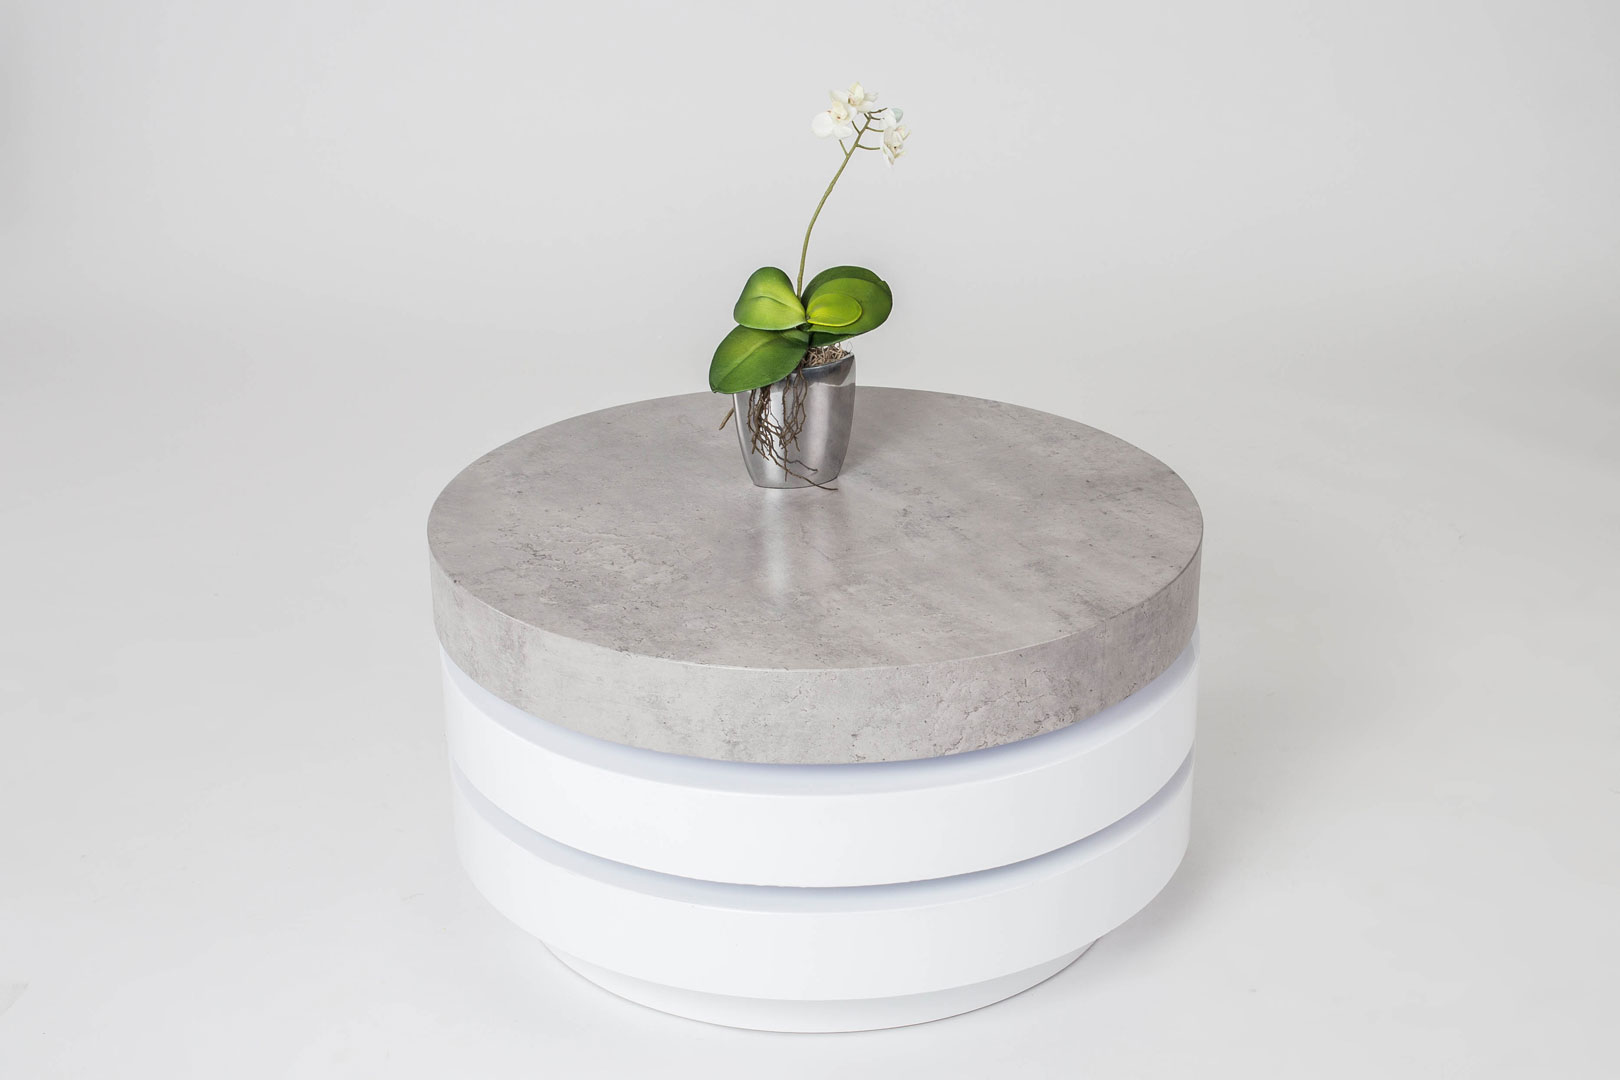 Table Basse En Beton Table Basse Design Ronde En Bois Coloris Blanc Béton Celia